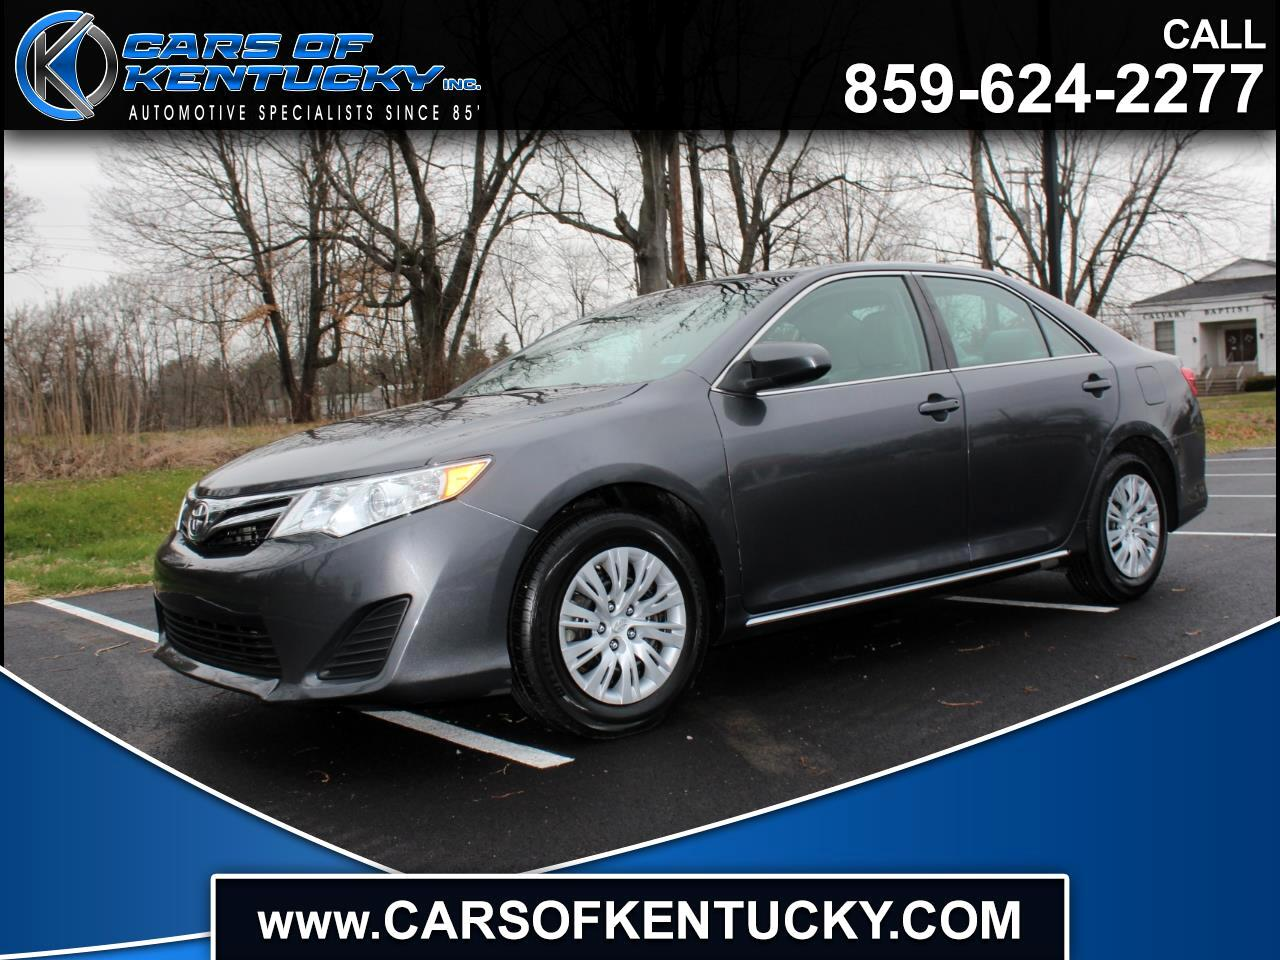 Toyota Camry 2014.5 4dr Sdn I4 Auto LE (Natl) 2012